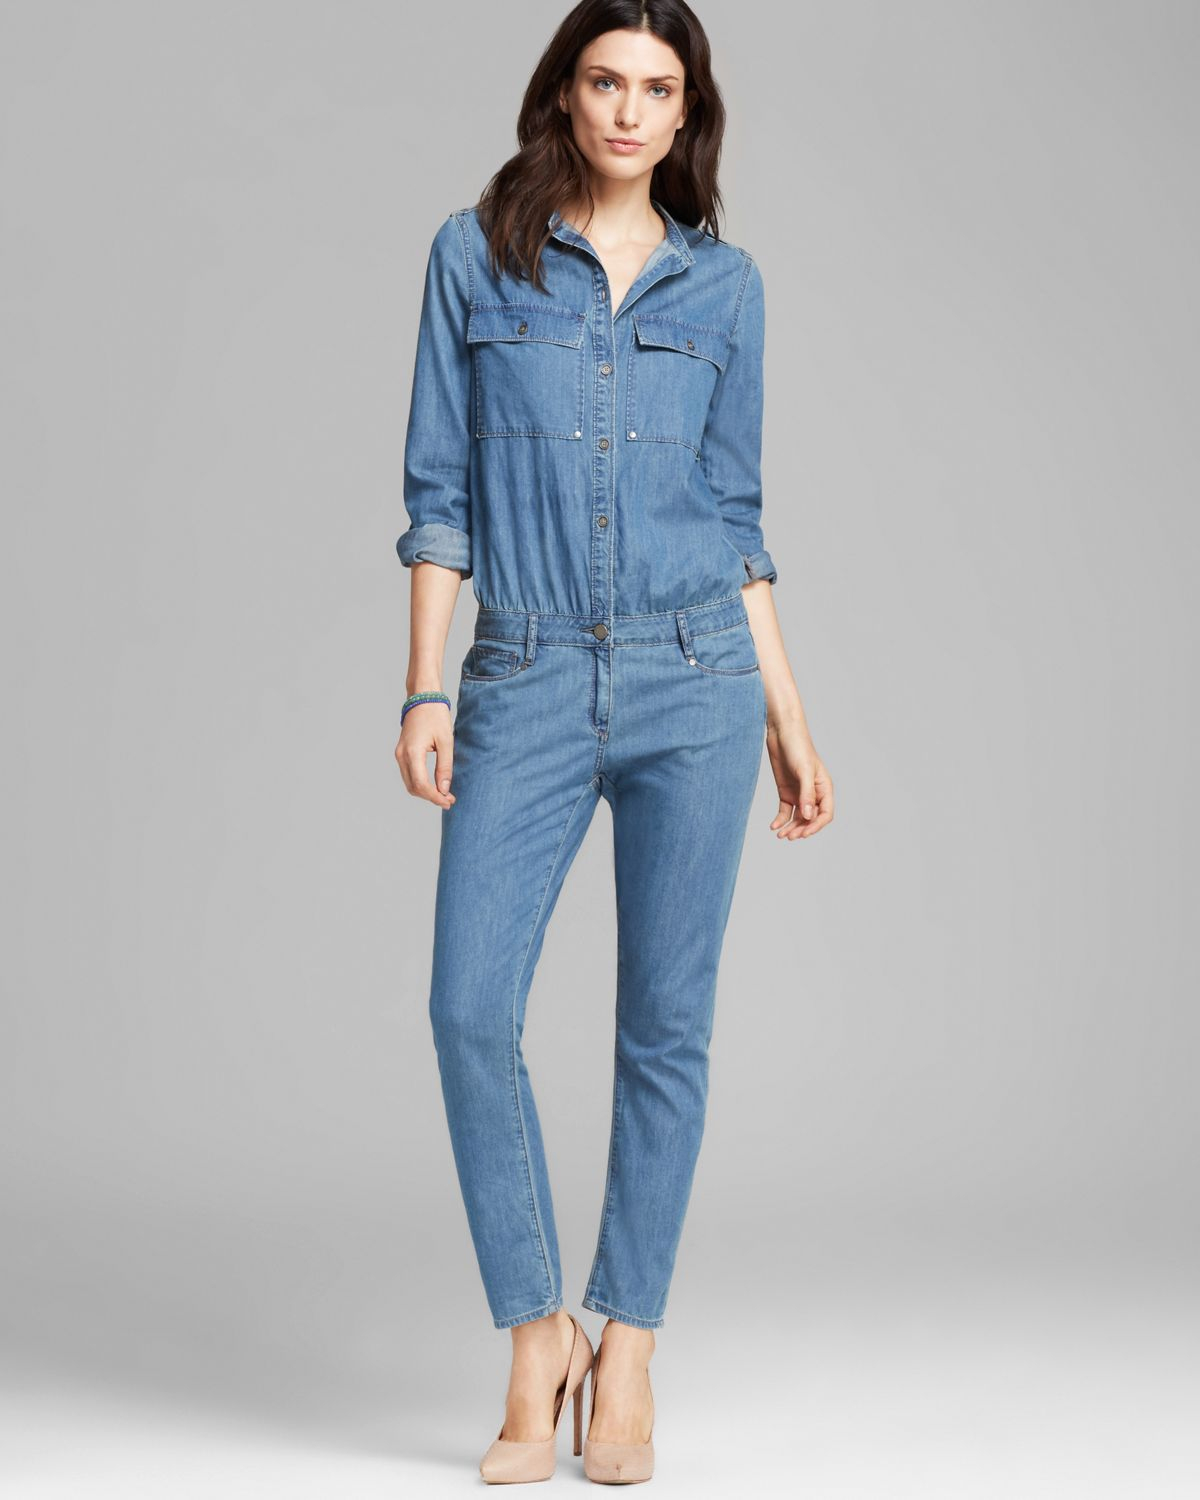 Simple and easy to throw on in a jiffy, denim jumpsuits and rompers have become a staple for casual style that goes anywhere. Shop rompers and overalls for kids and women, including one-piece denim with stretch and tie details or the classic overall style.